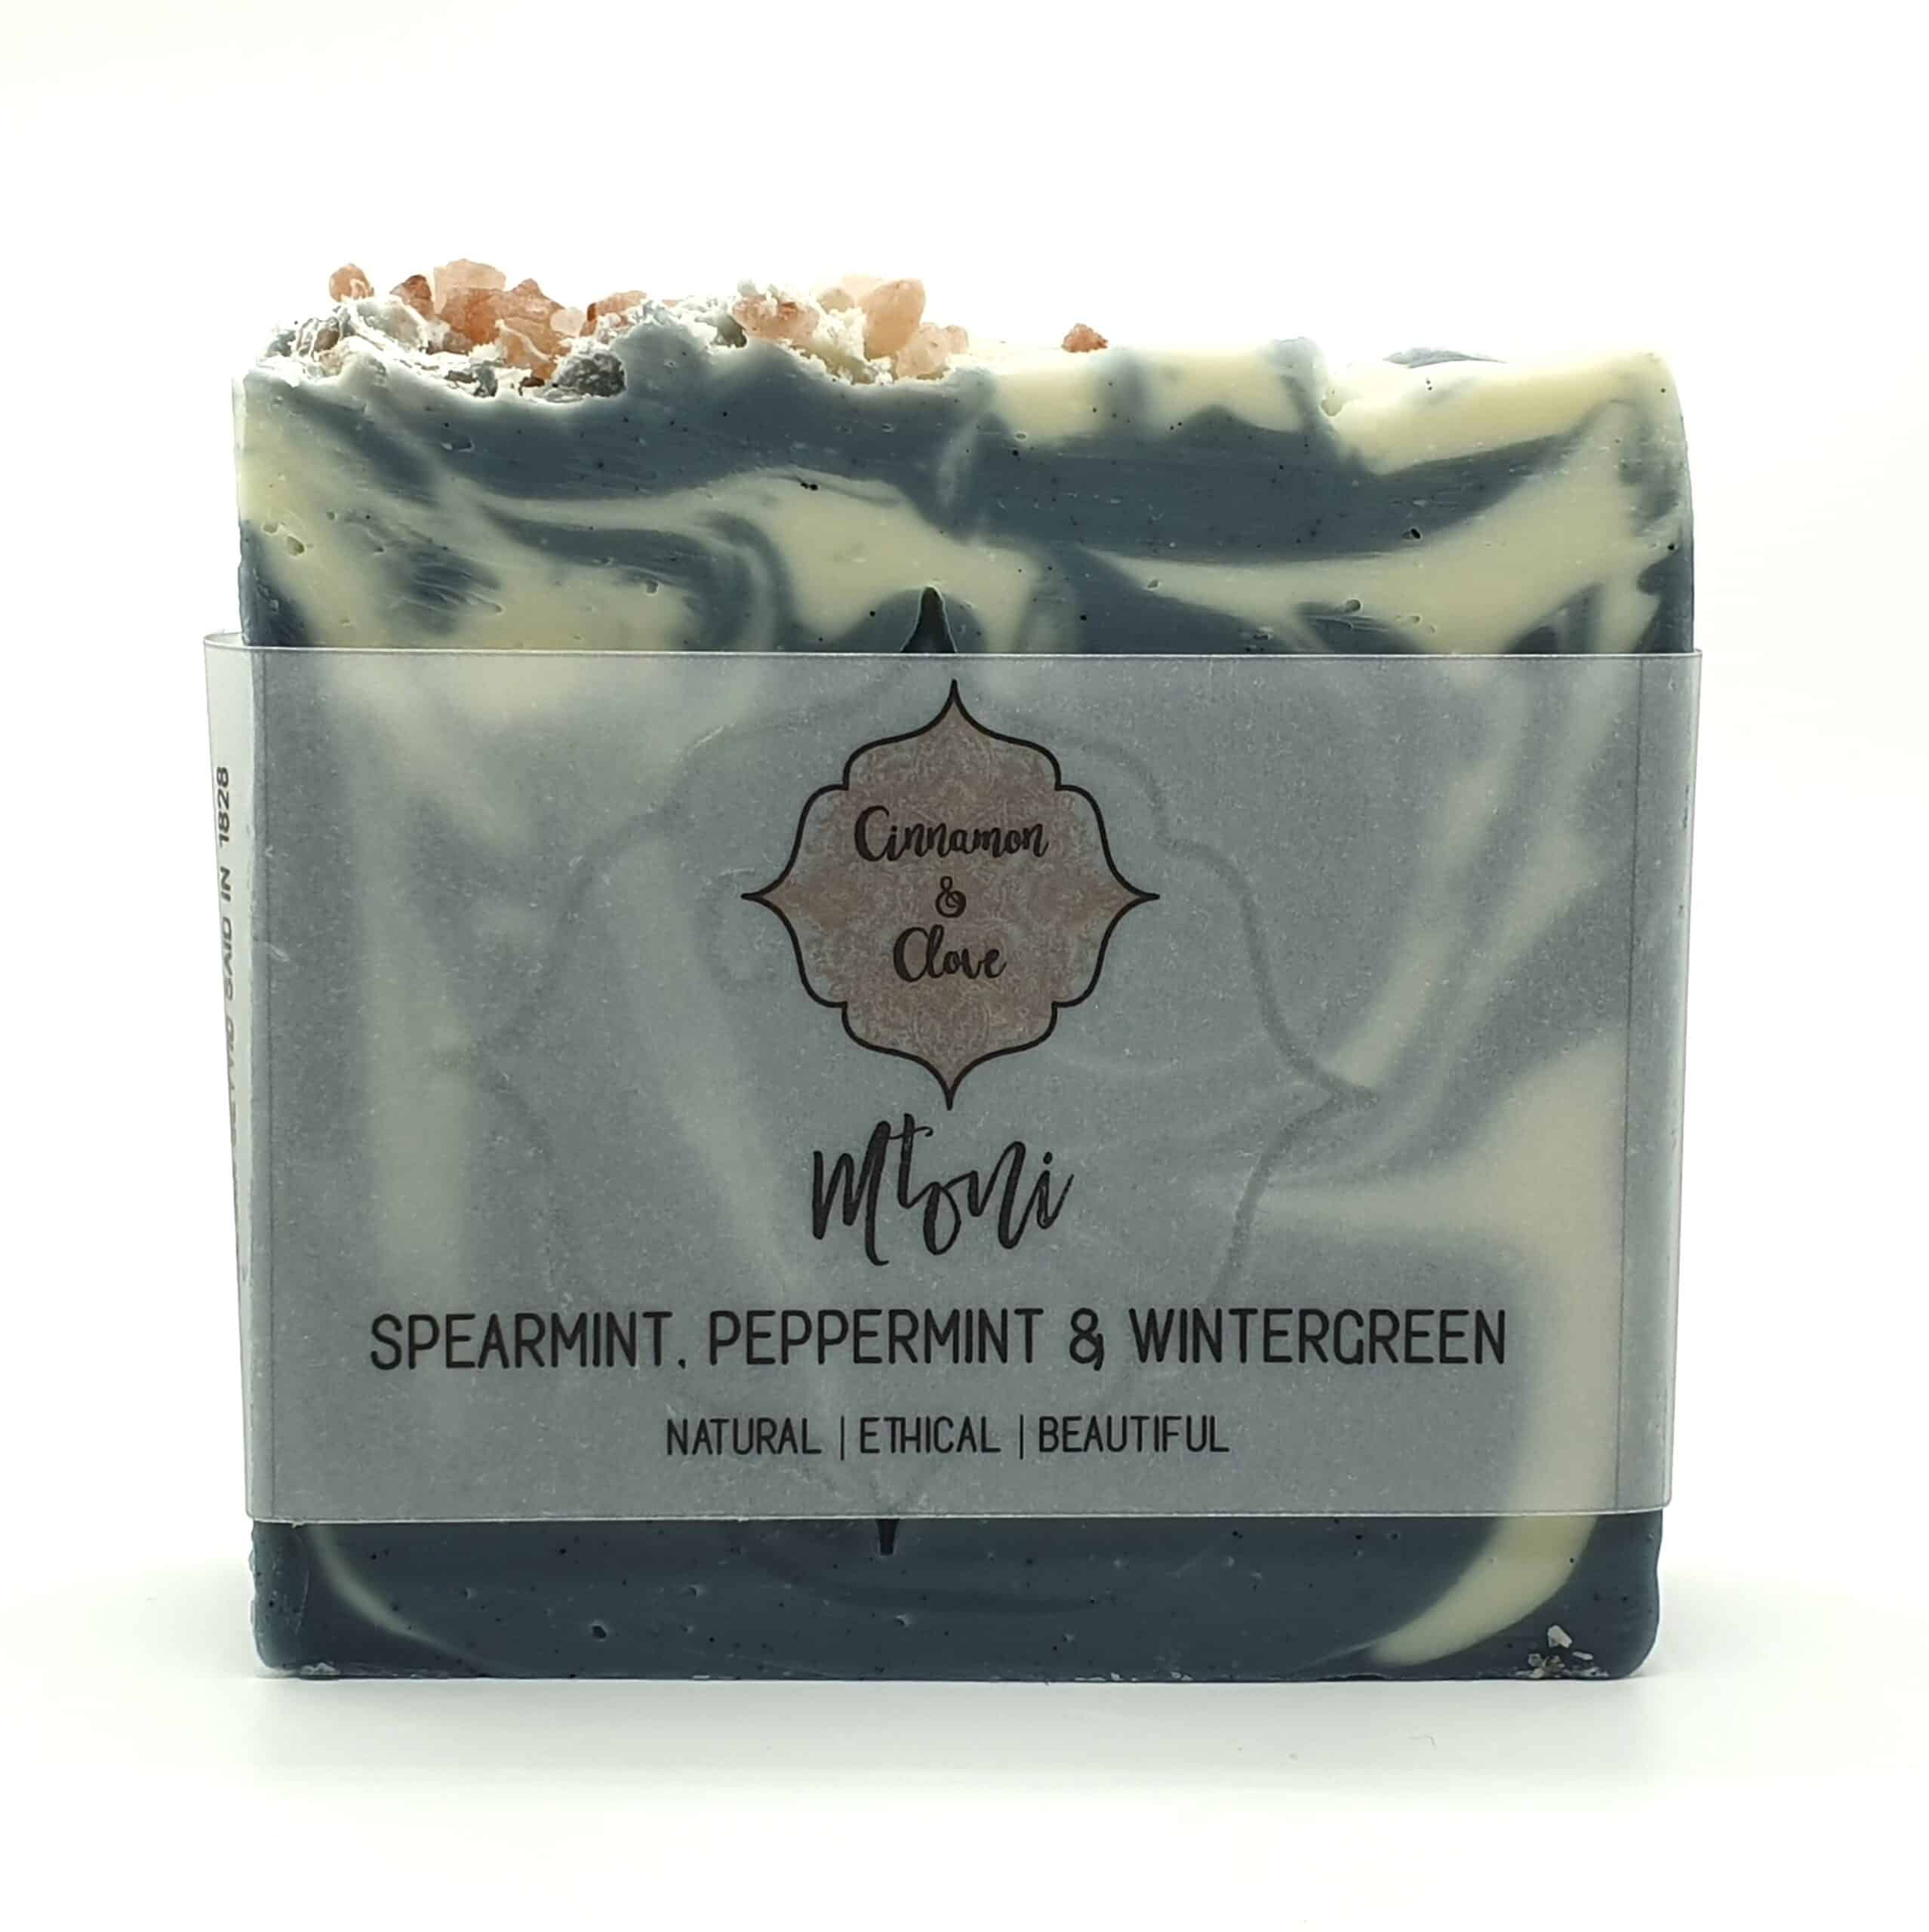 Mtoni – Handcrafted All Natural Mint Artisan Soap By Cinnamon And Clove (Prahran)